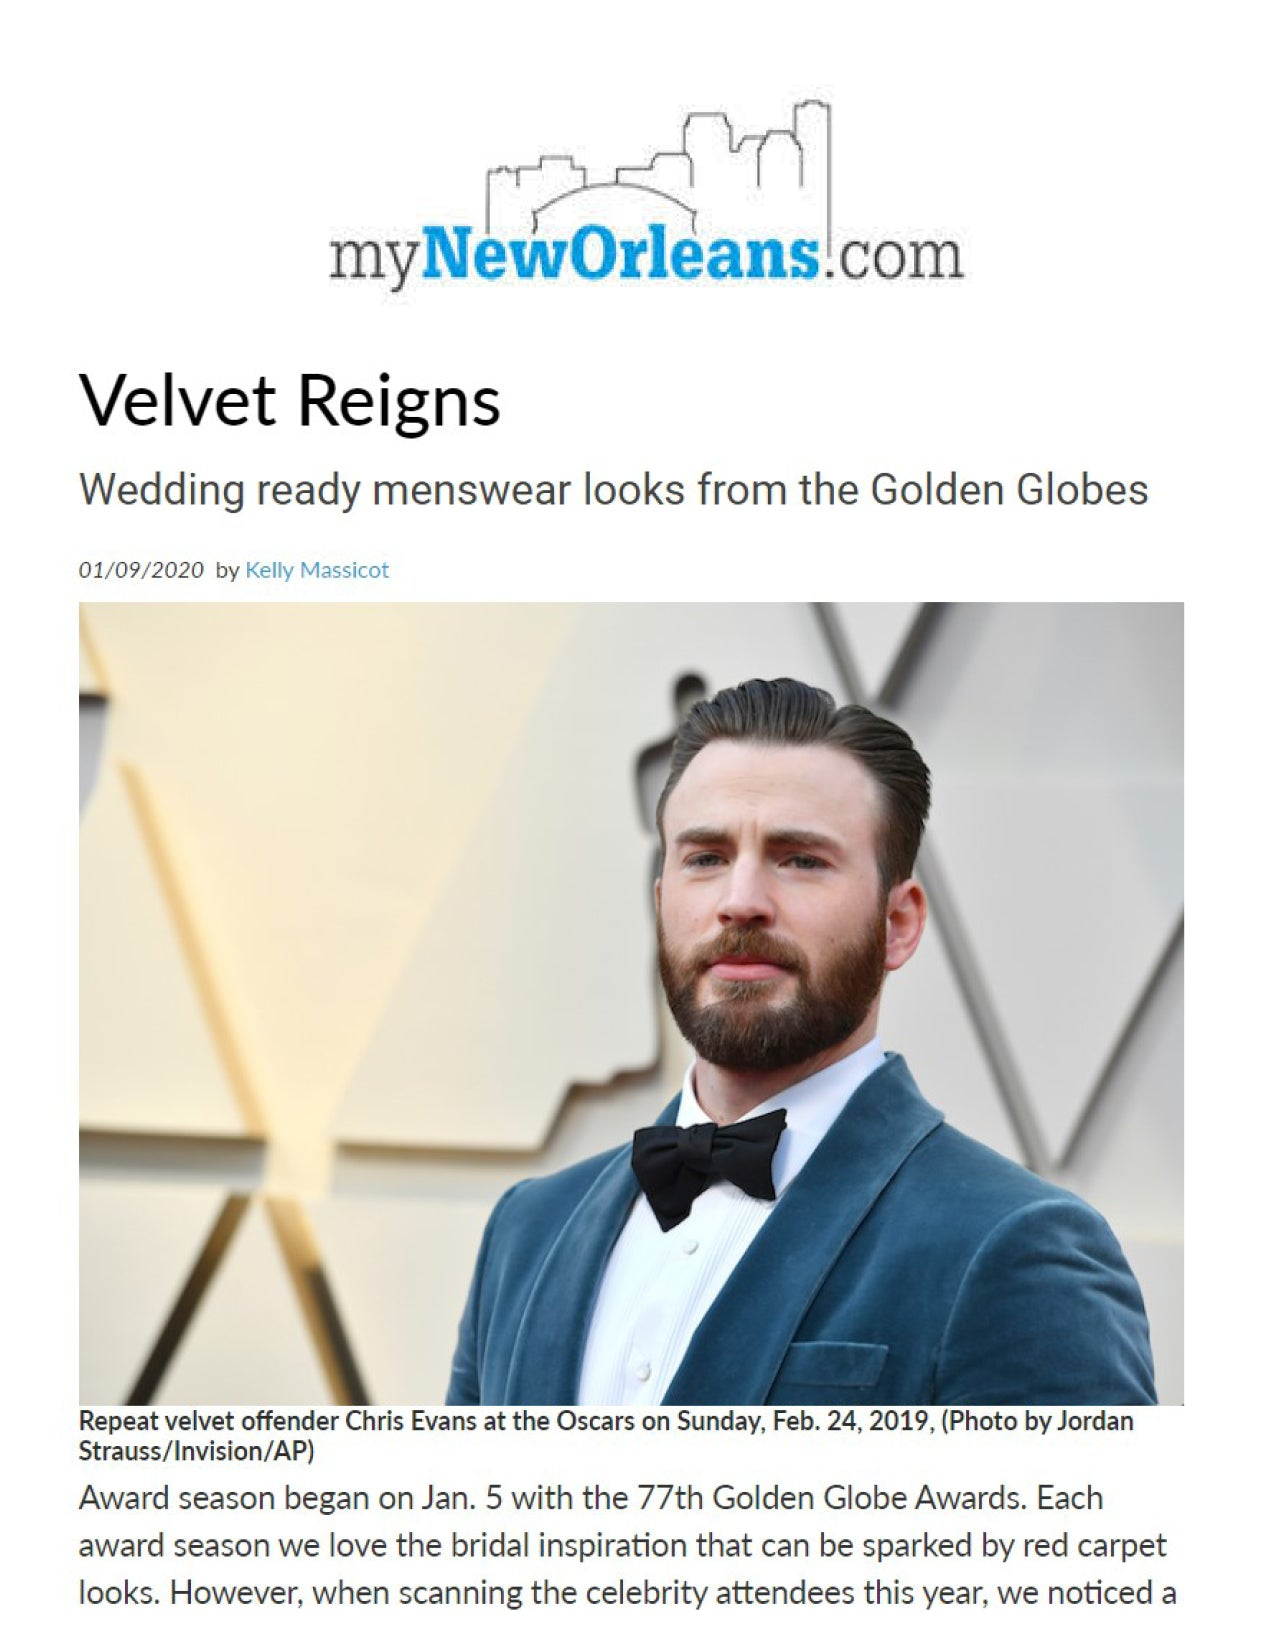 Velvet Reigns | MYNEWORLEANS.COM | JANUARY 2020